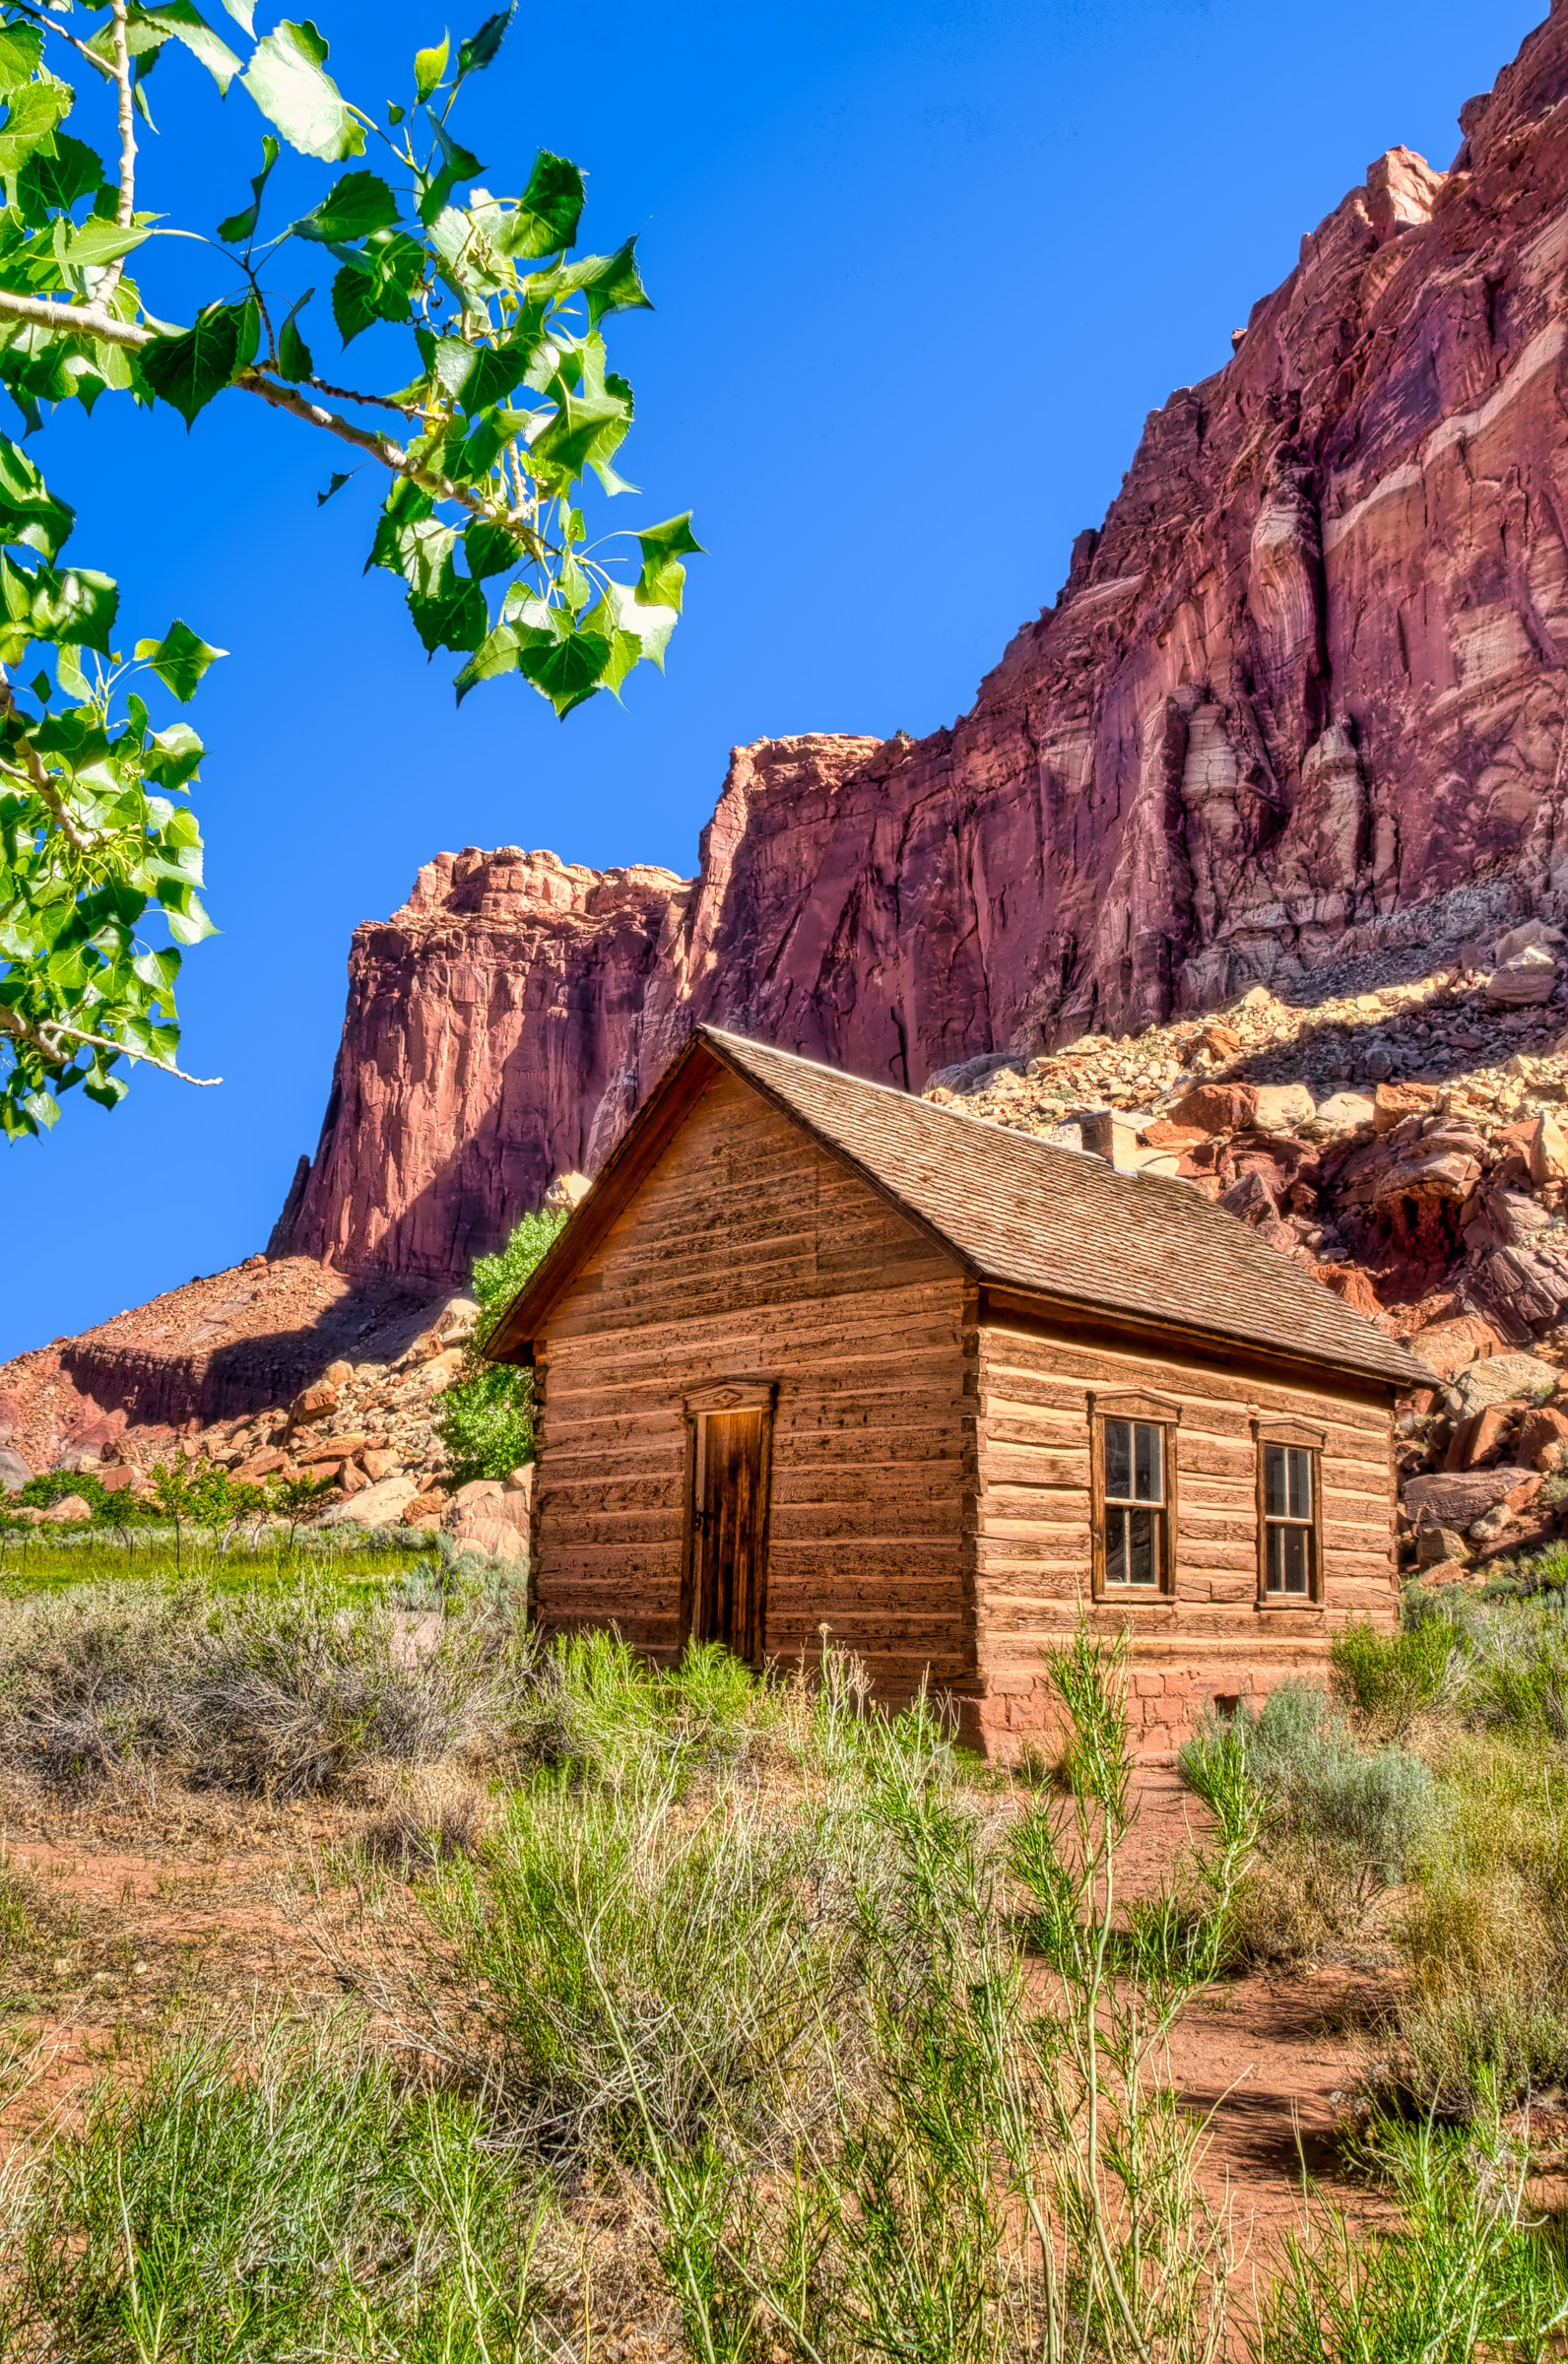 Historic schoolhouse in the Fruita district of Capitol Reef Natioal Park.